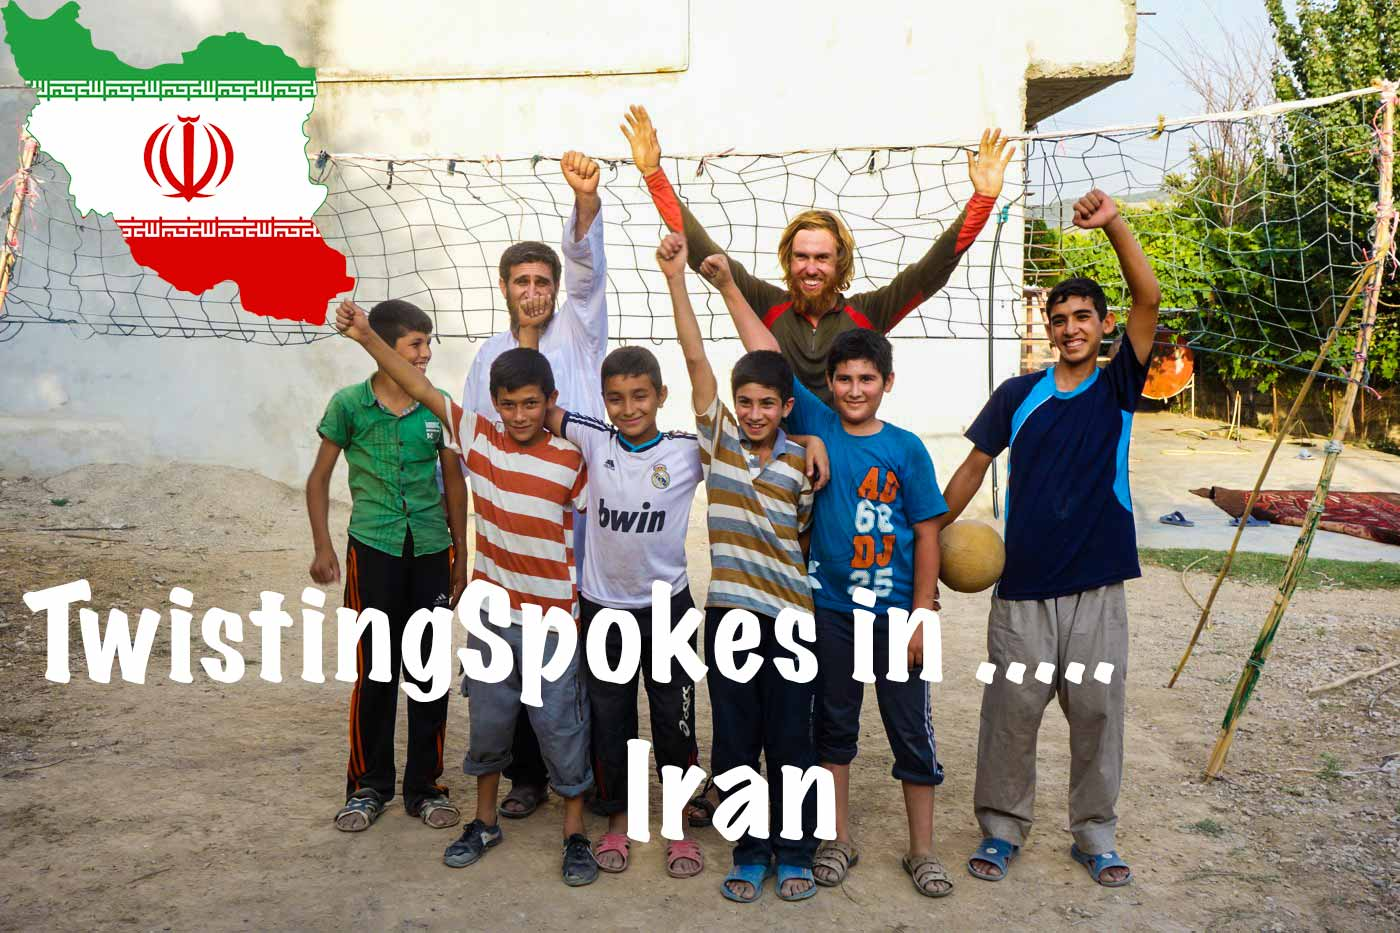 TwistingSpokes in Iran